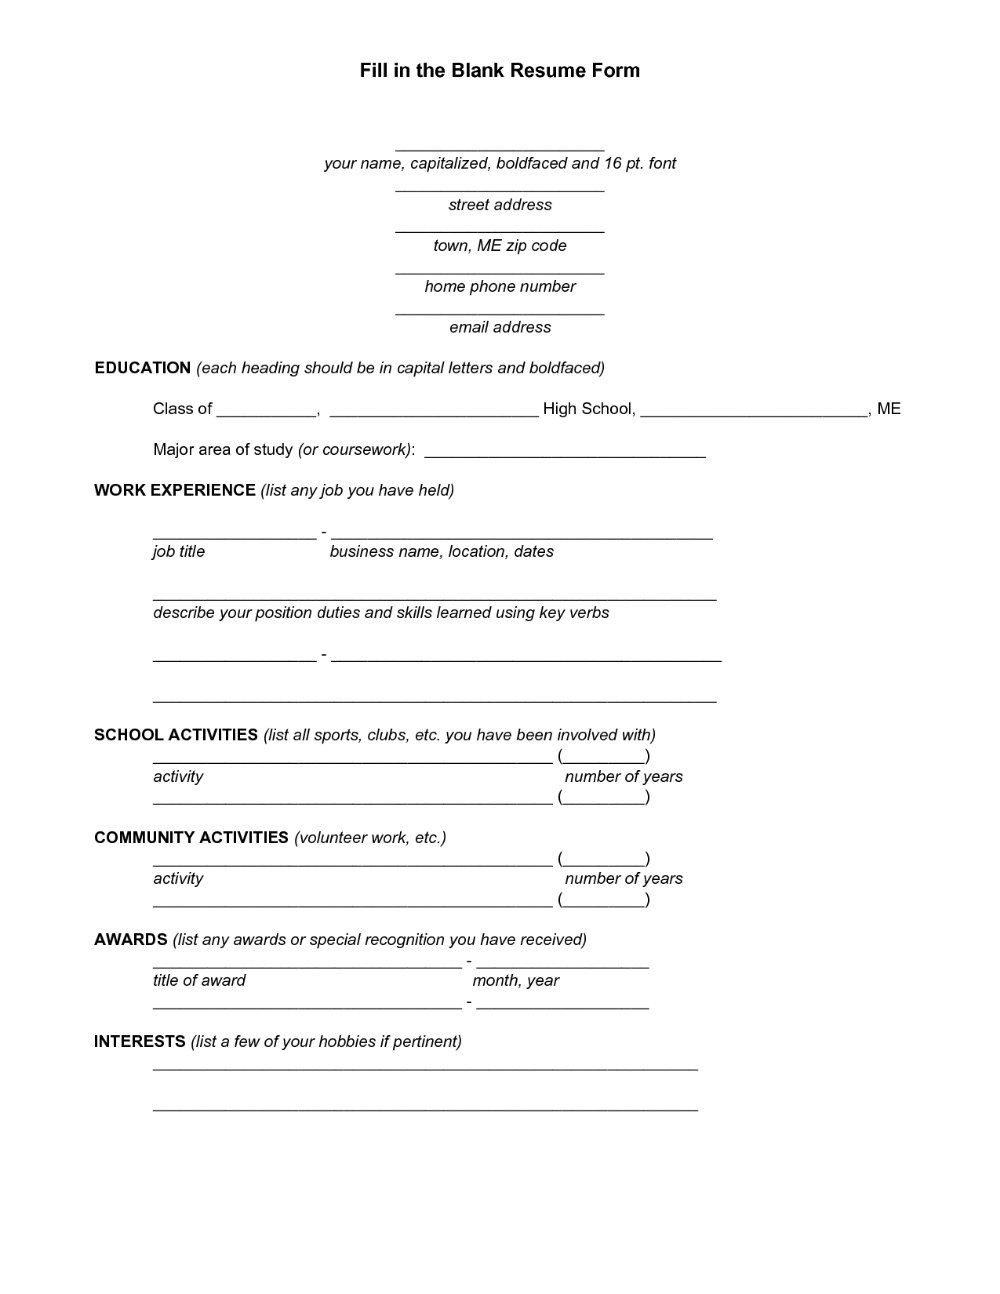 Resume Templates You Can Fill In (With images) Student